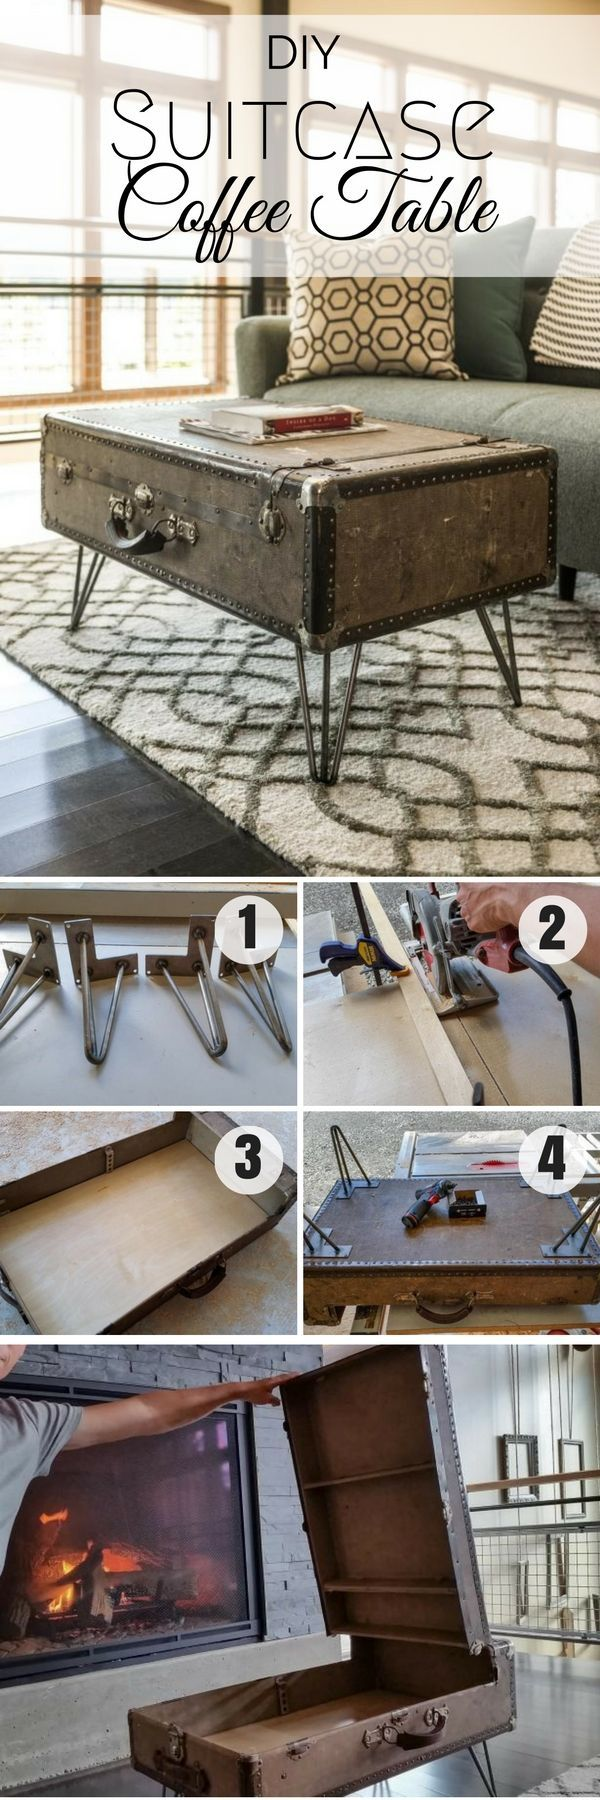 Check out how to easily turn a suitcase into a DIY coffee table /istandarddesign/